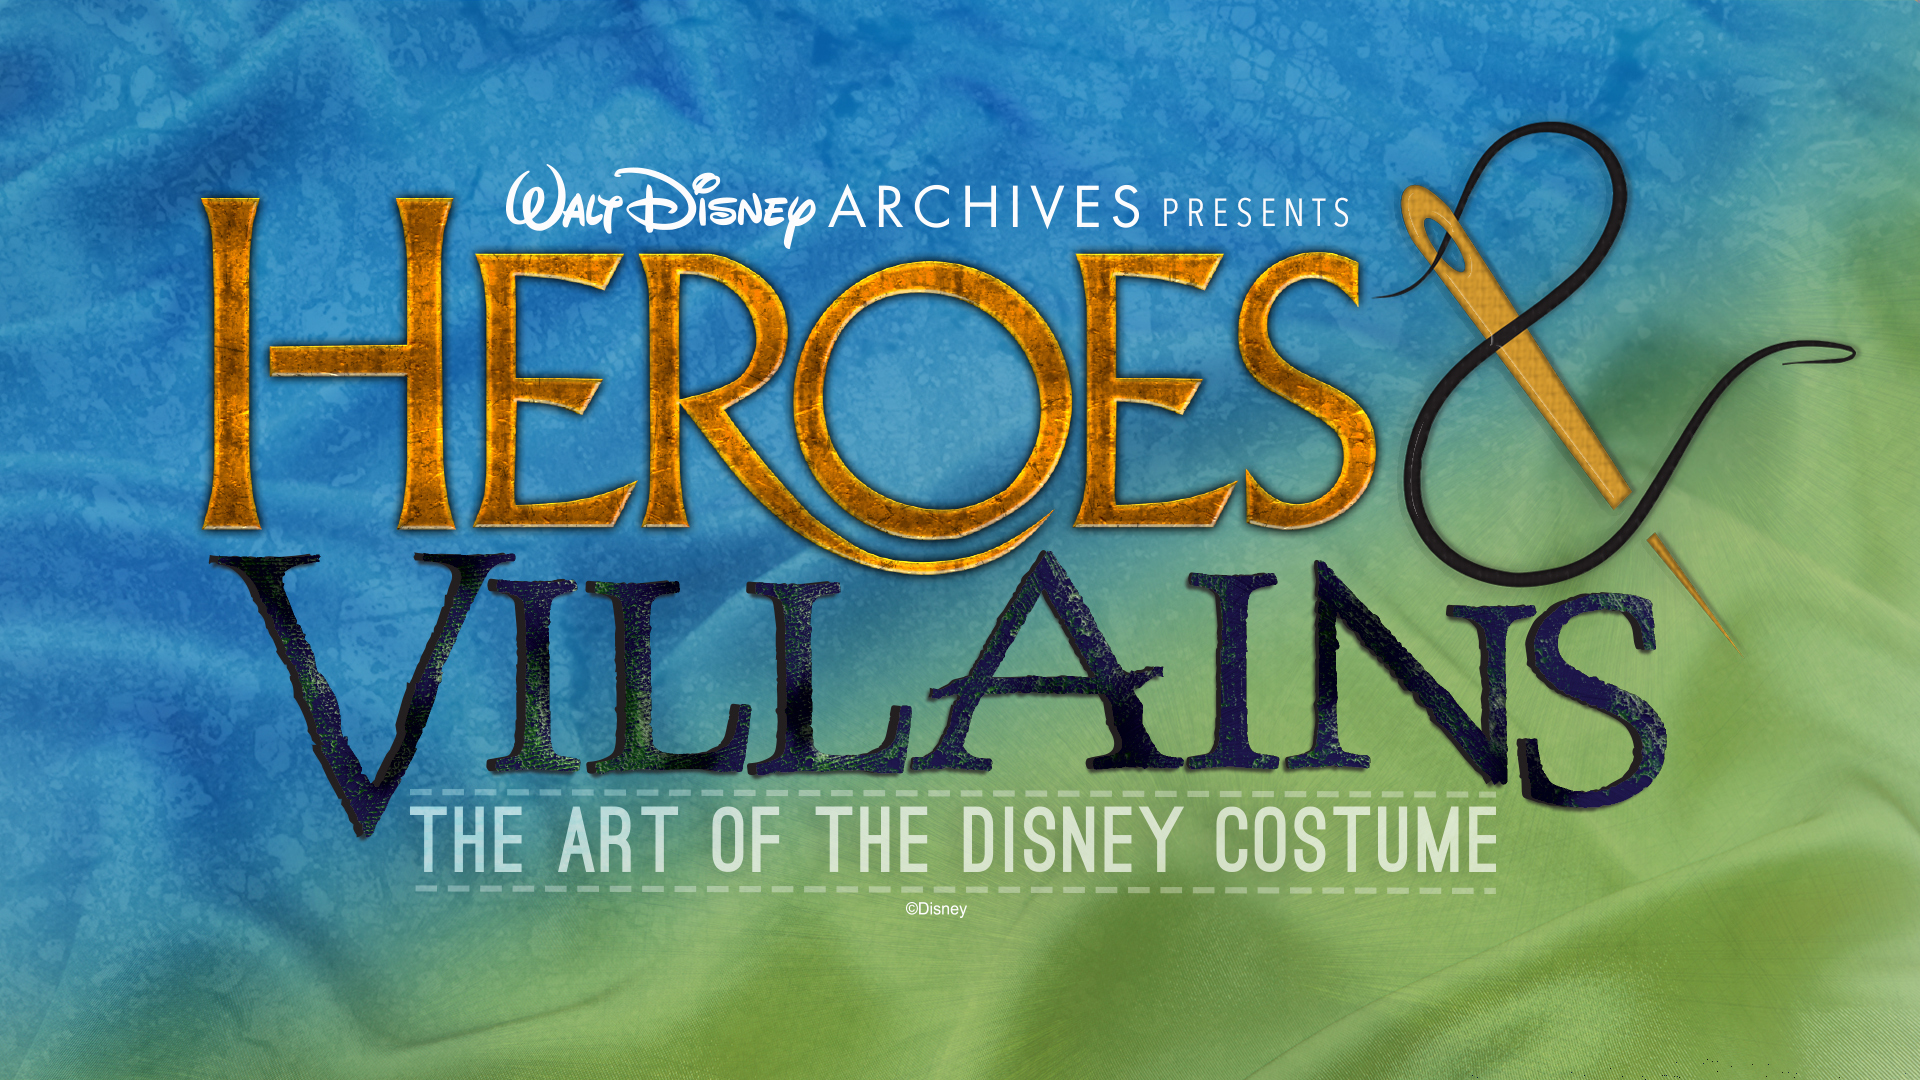 Brand-New Walt Disney Archives Exhibit Celebrating Disney's MostIconic Heroes and Villains to Open at D23 Expo 2019